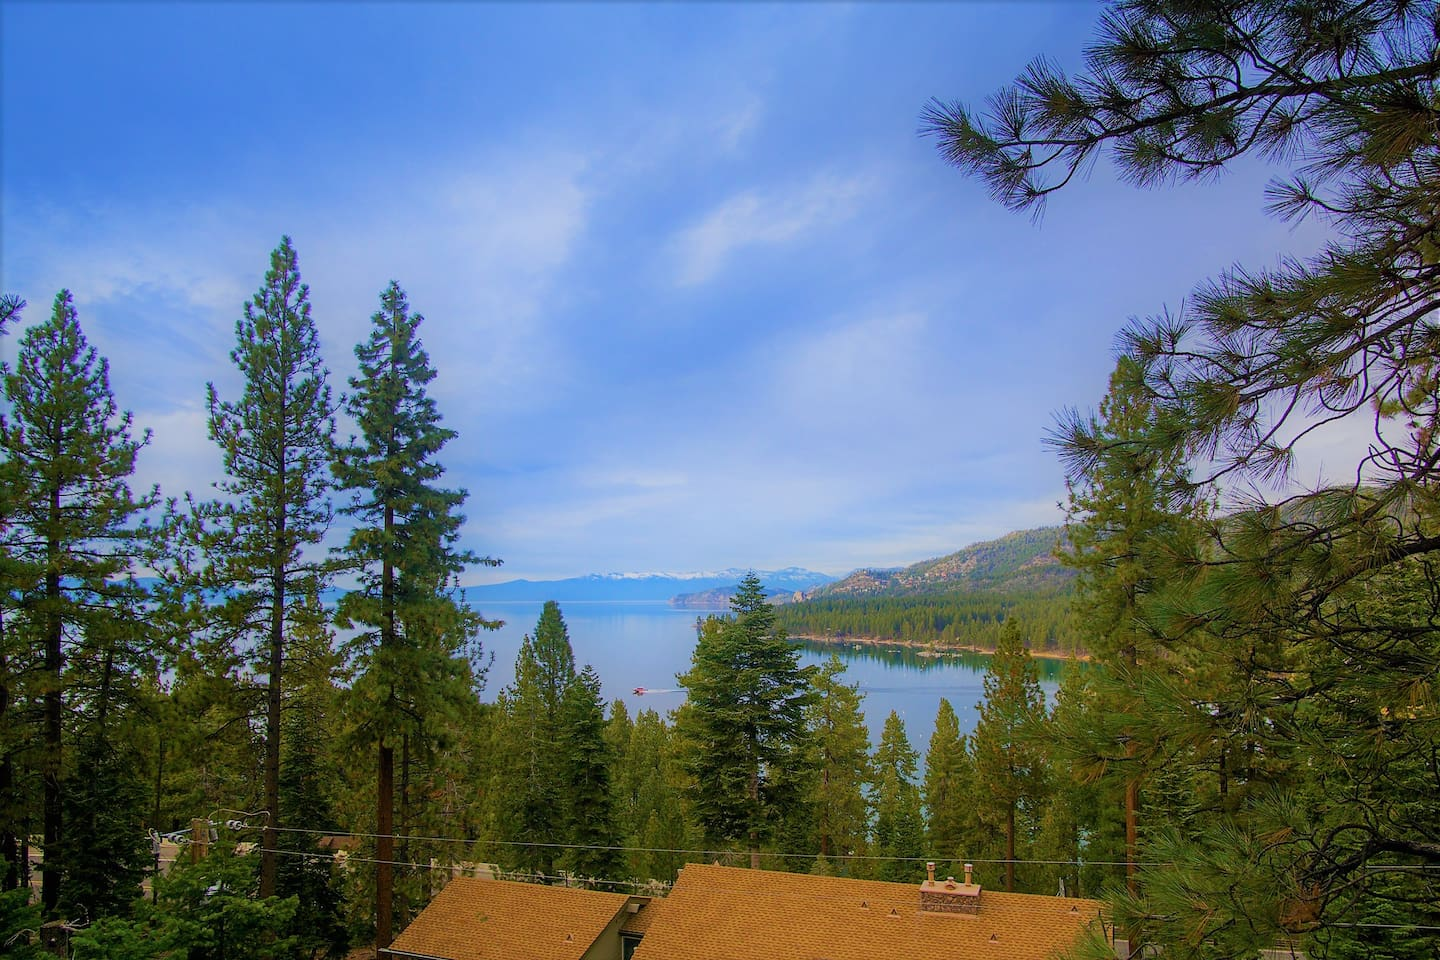 Million dollar view of Zephyr Cove. You can even watch the ferry come in and out of the bay.